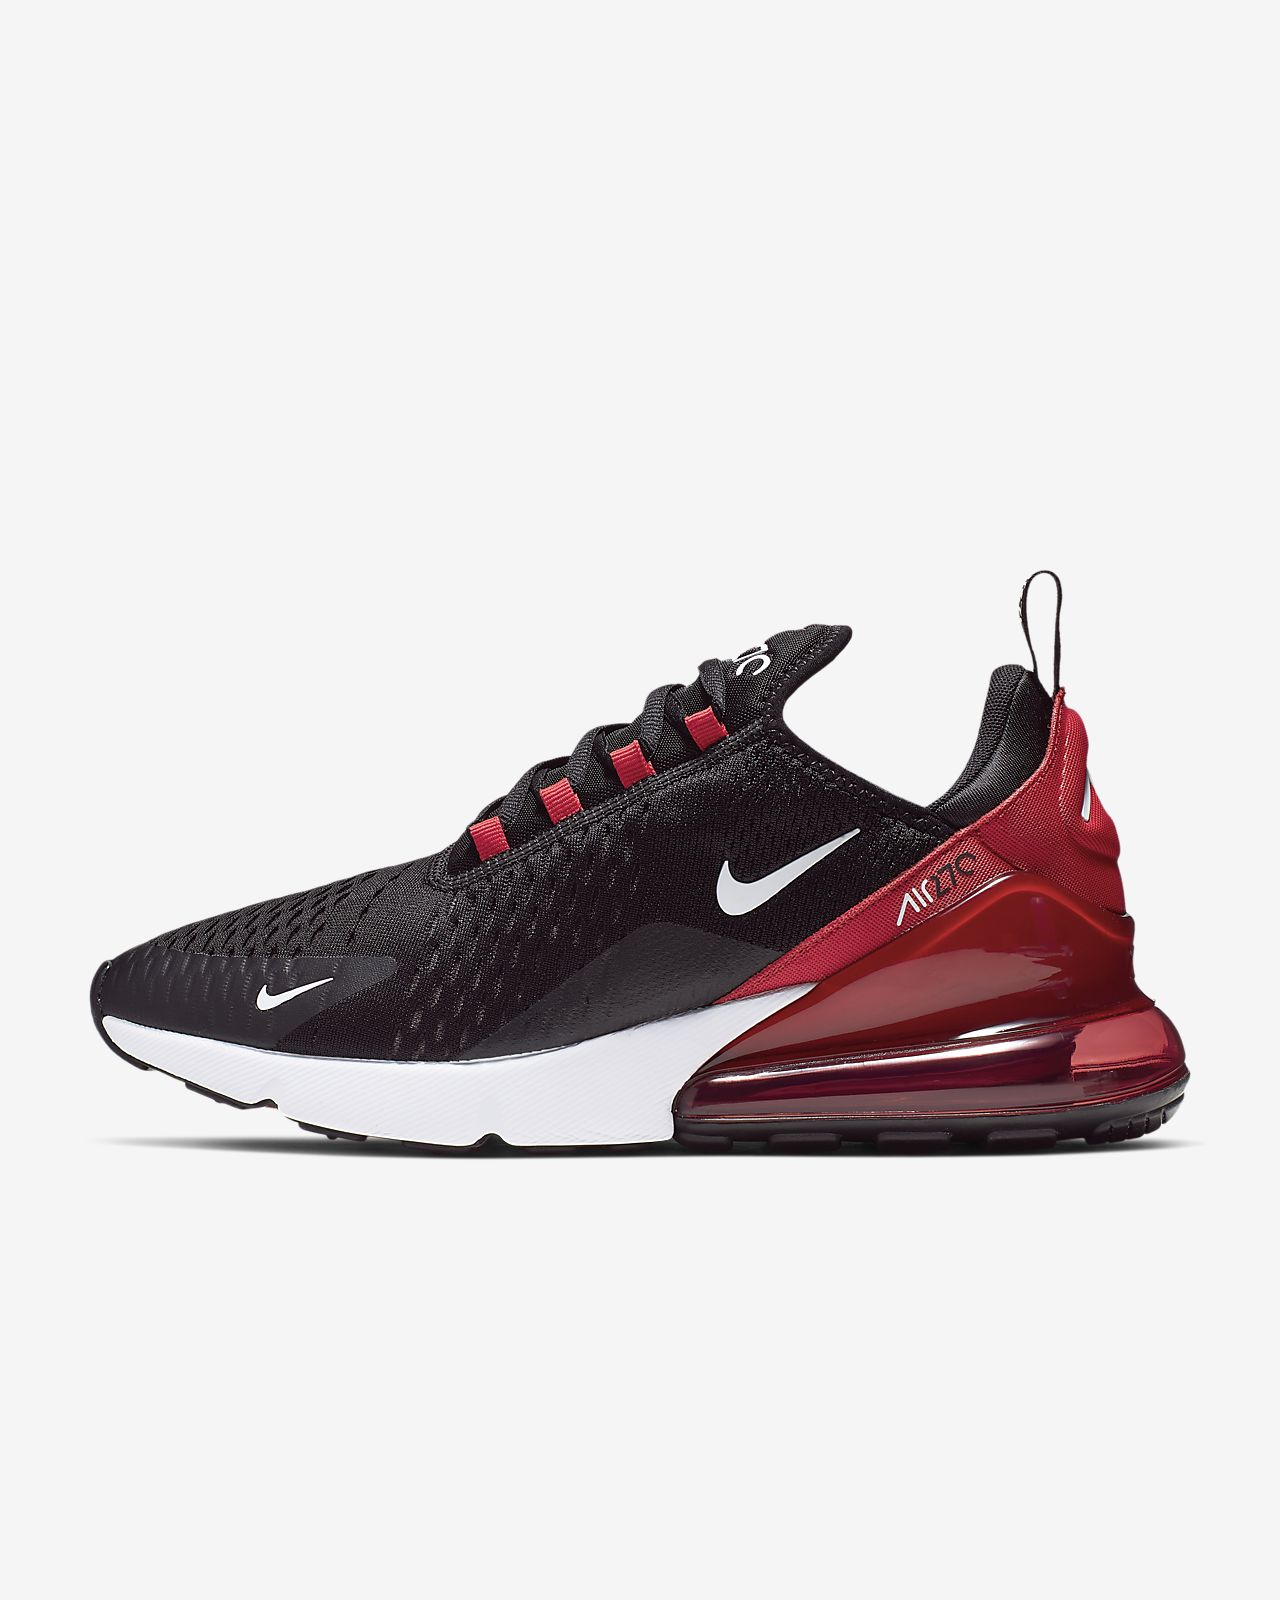 cheap for discount 2c7fb 64205 ... Chaussure Nike Air Max 270 pour Homme